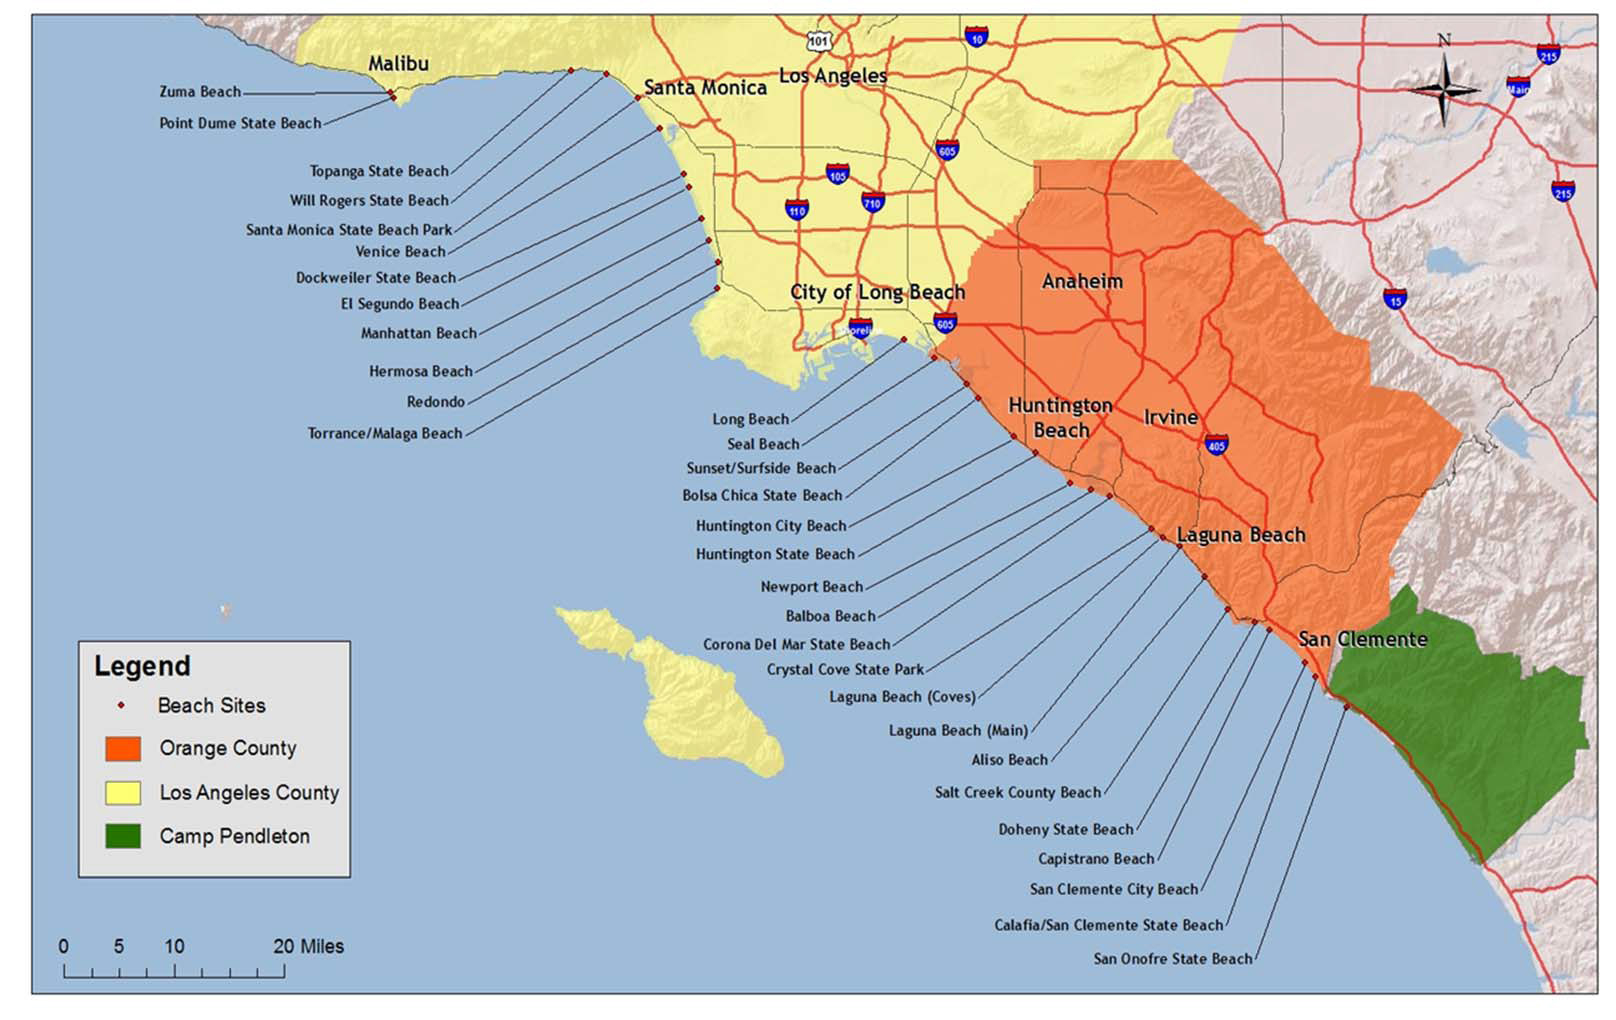 Map Of Southern Cali California State Map California Coast Map - California Beaches Map